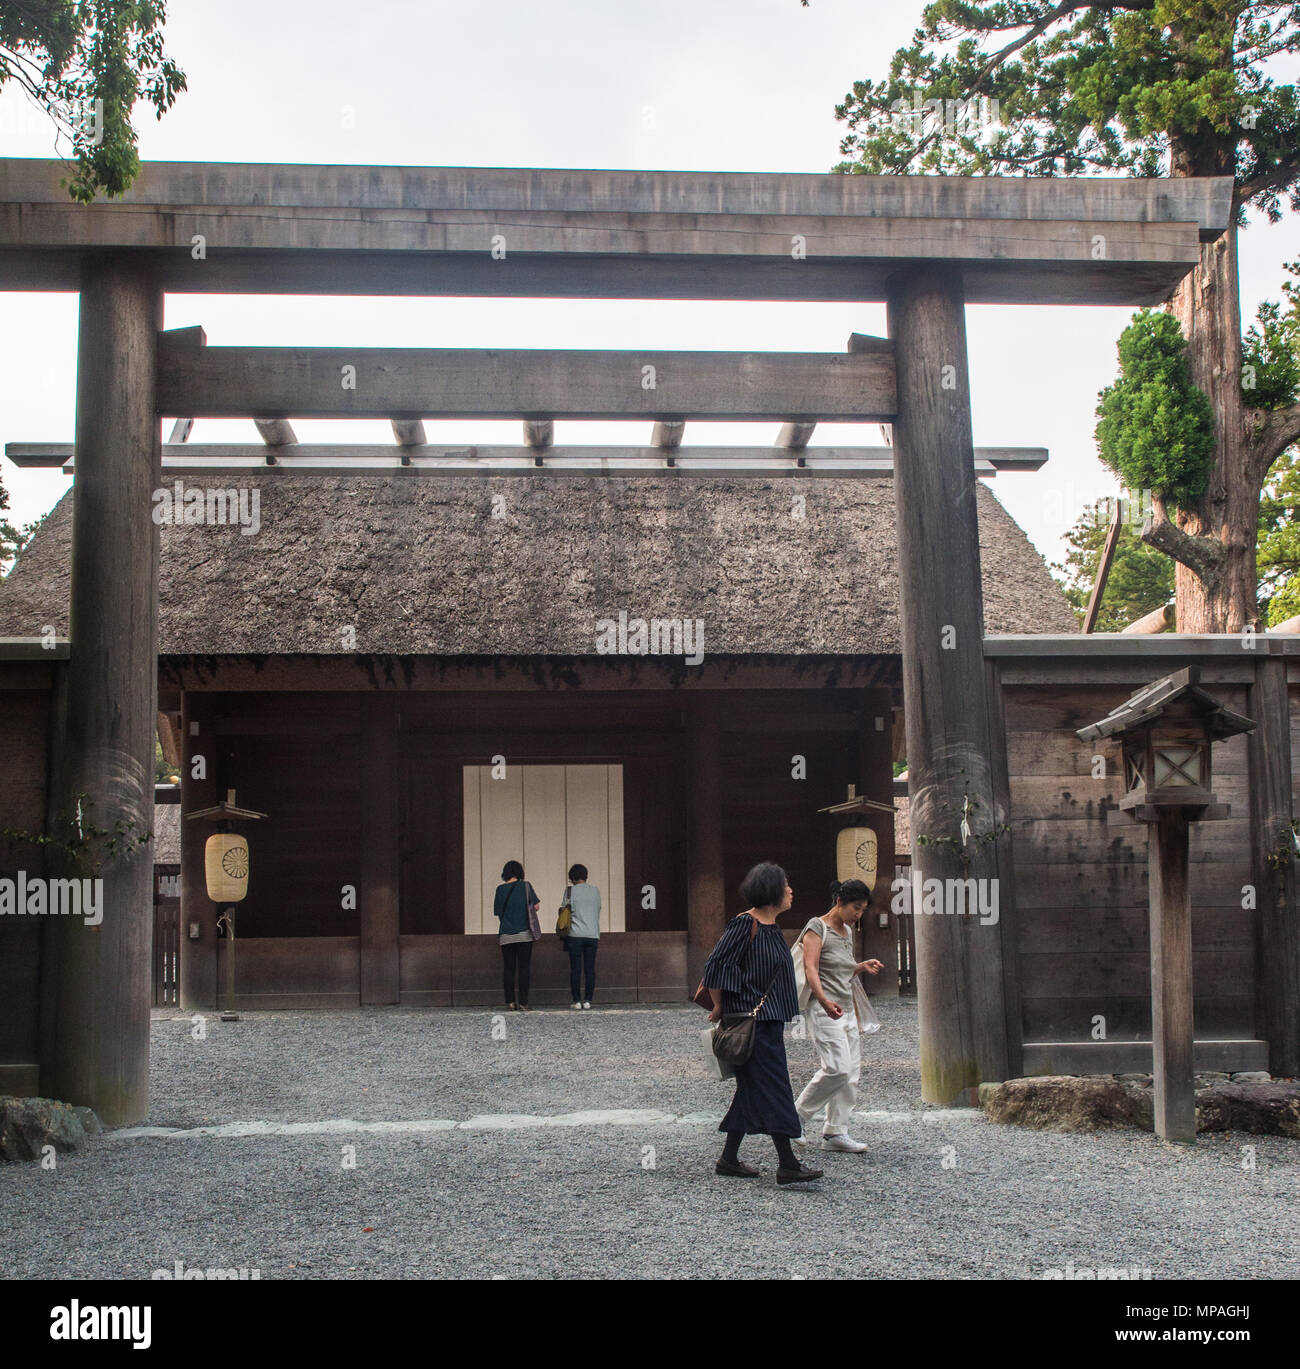 Entrance to Goshoden, the main sanctuary of Geku, showing the place where ordinary visitors have access and may pray. - Stock Image